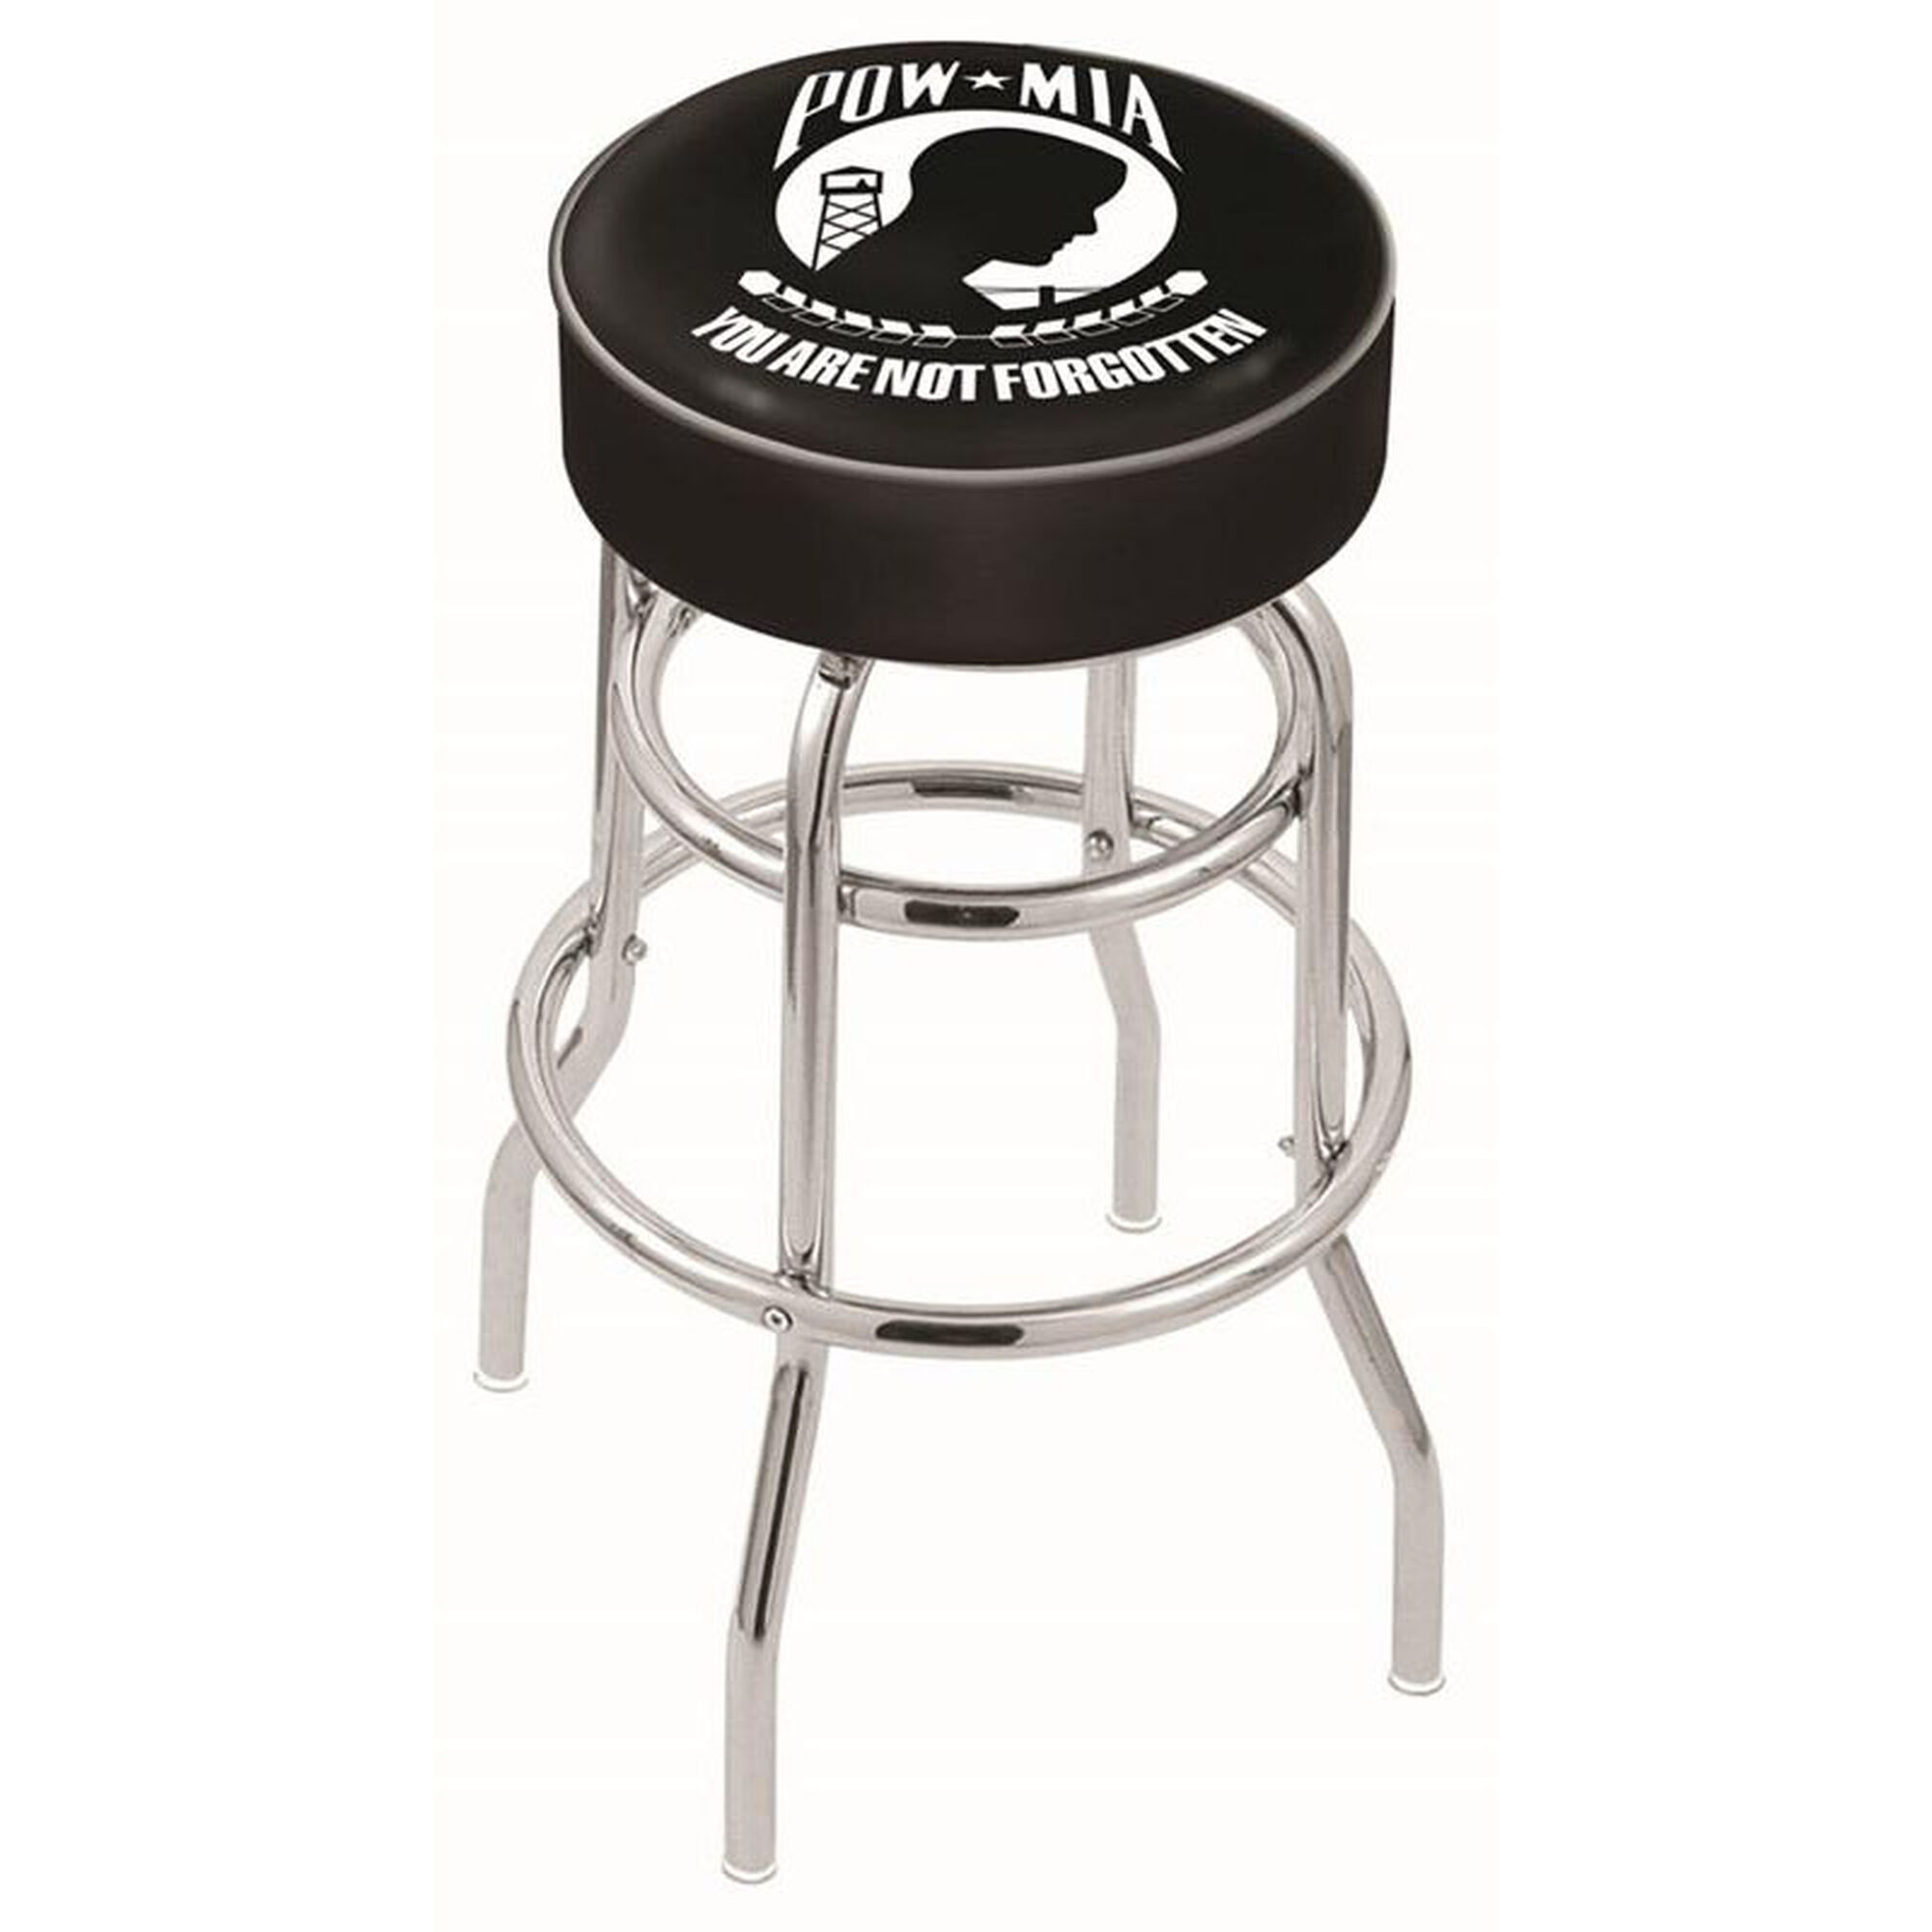 Astonishing Pow Mia 25 Chrome Finish Double Ring Swivel Backless Counter Height Stool With 4 Thick Seat Machost Co Dining Chair Design Ideas Machostcouk